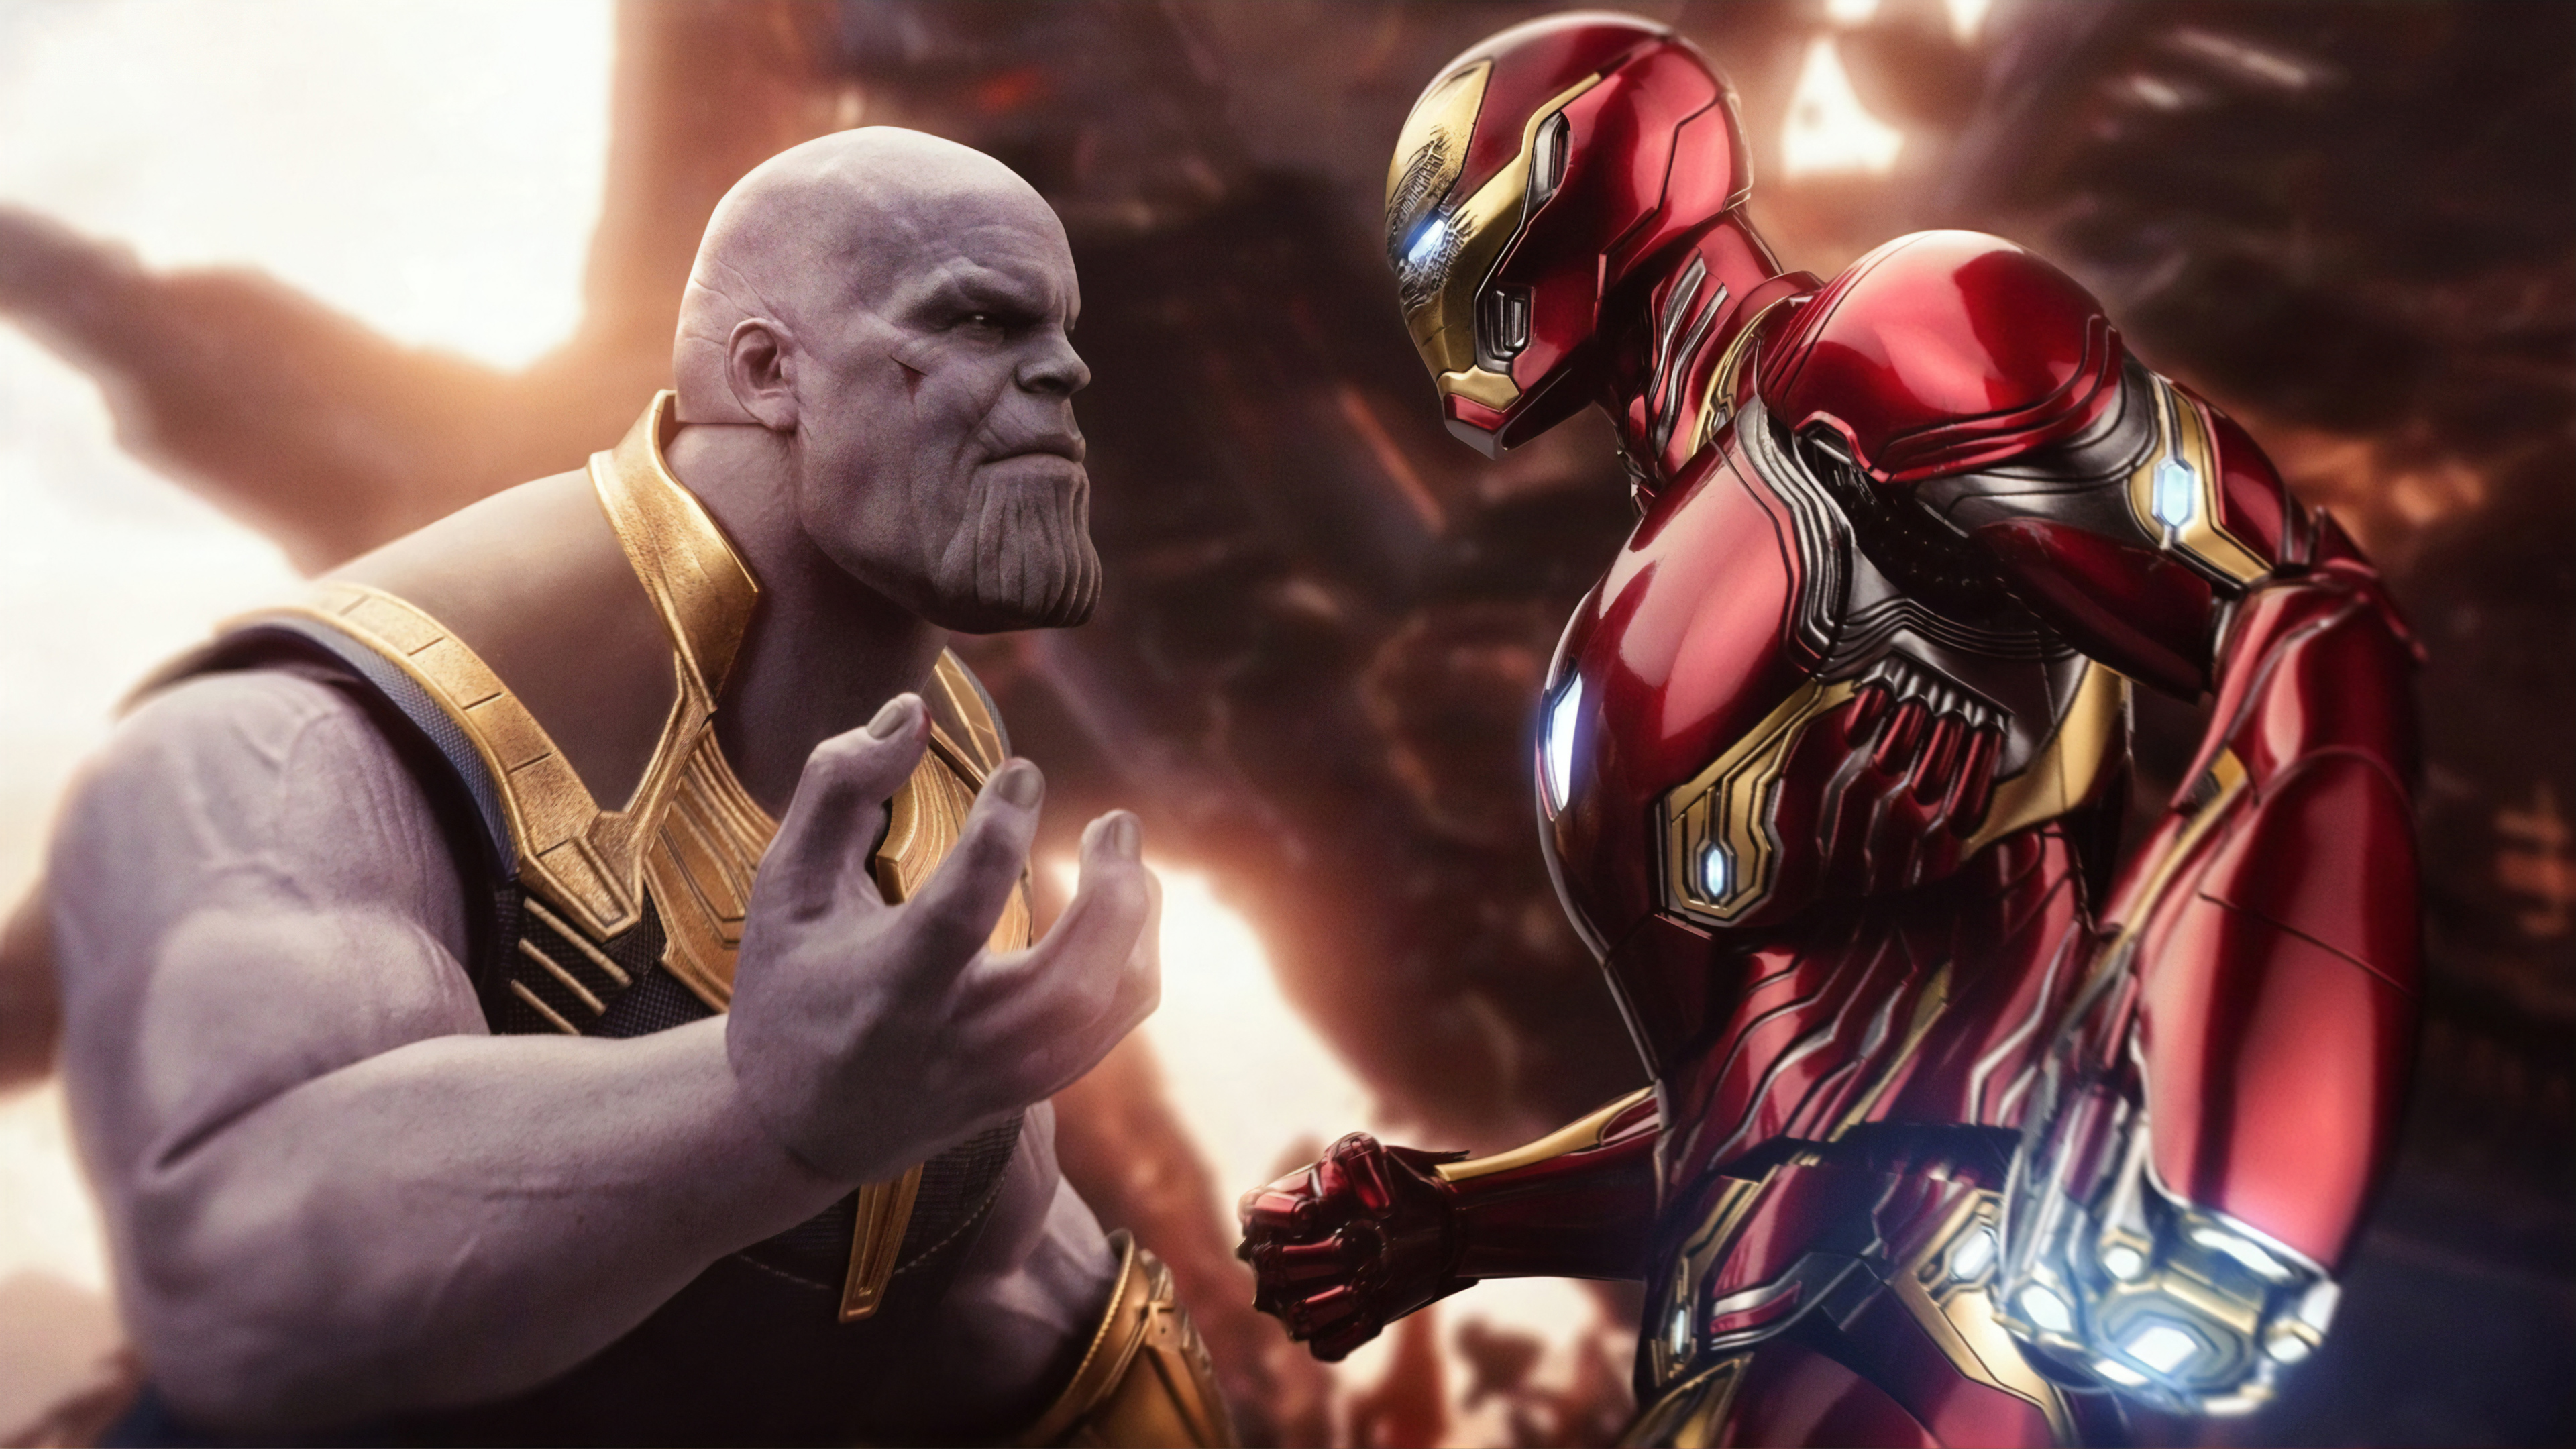 Wallpaper 4k Iron Man Thanos 4k Wallpapers Hd Wallpapers Iron Man Wallpapers Superheroes Wallpapers Thanos Wallpapers